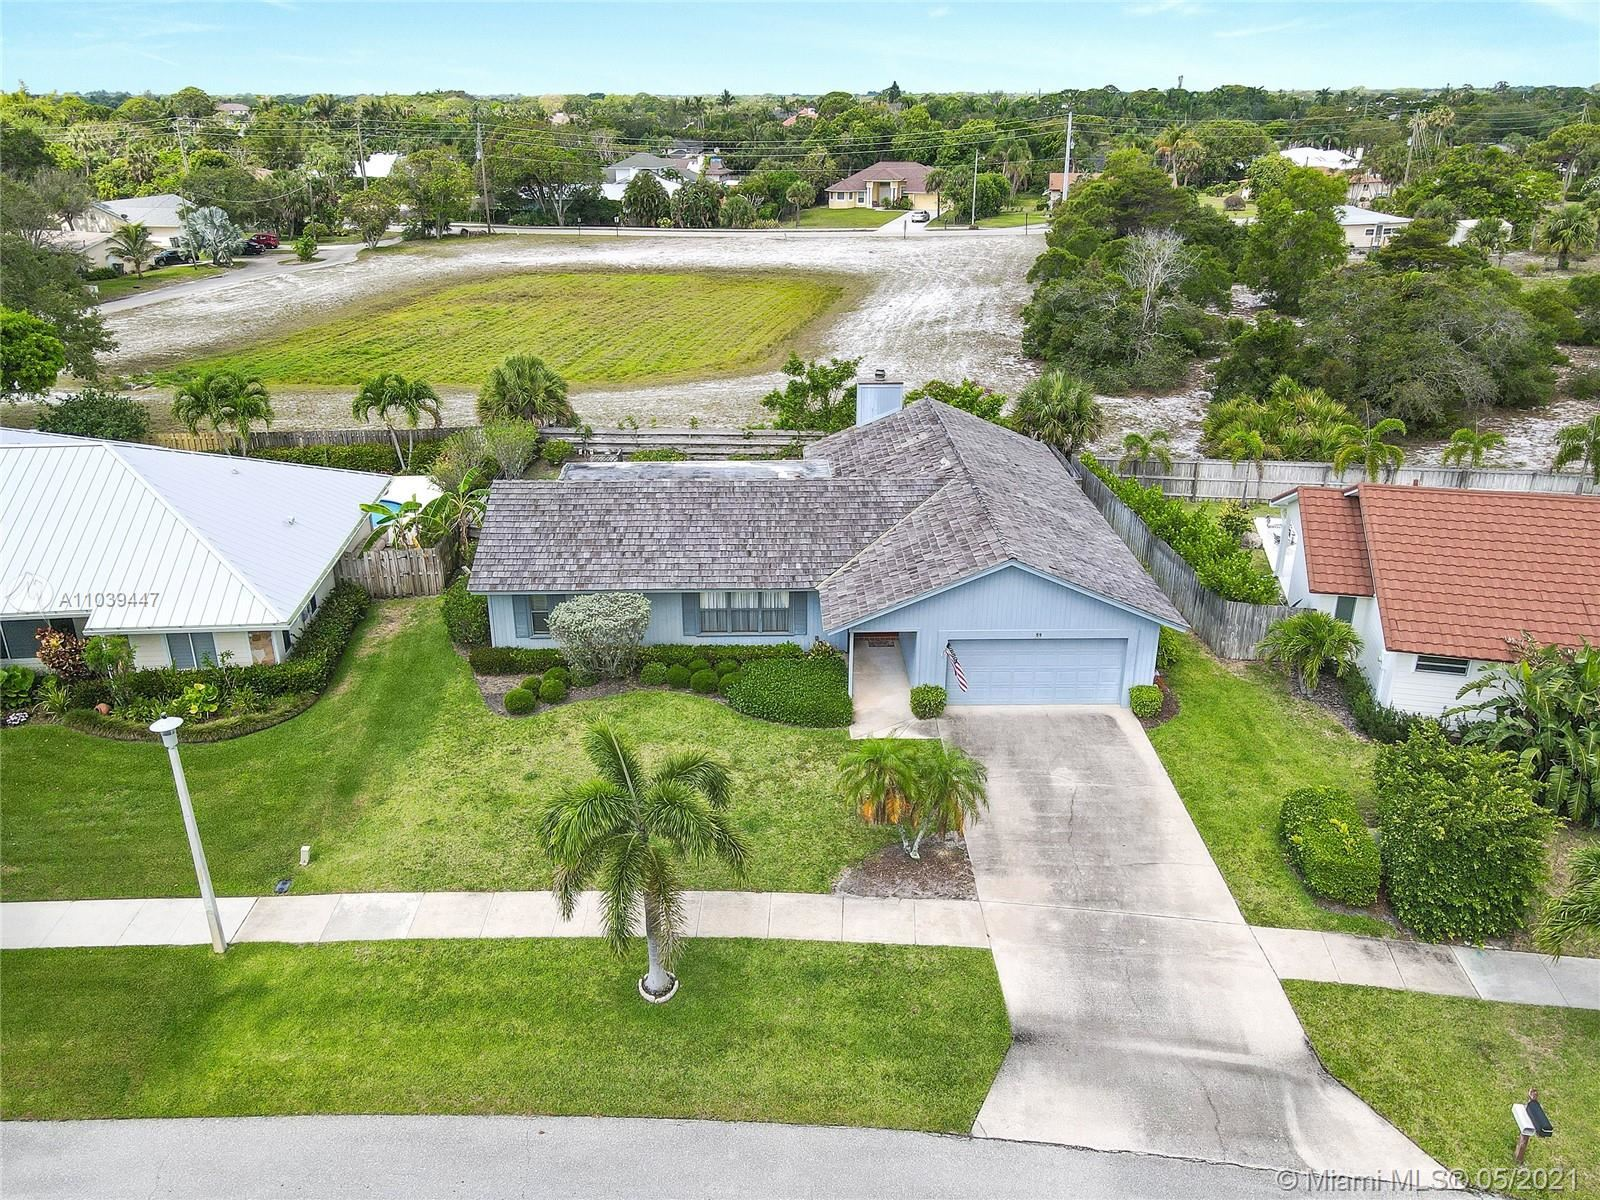 Photo of 59 Hickory Hill Rd, Tequesta, FL 33469 (MLS # A11039447)